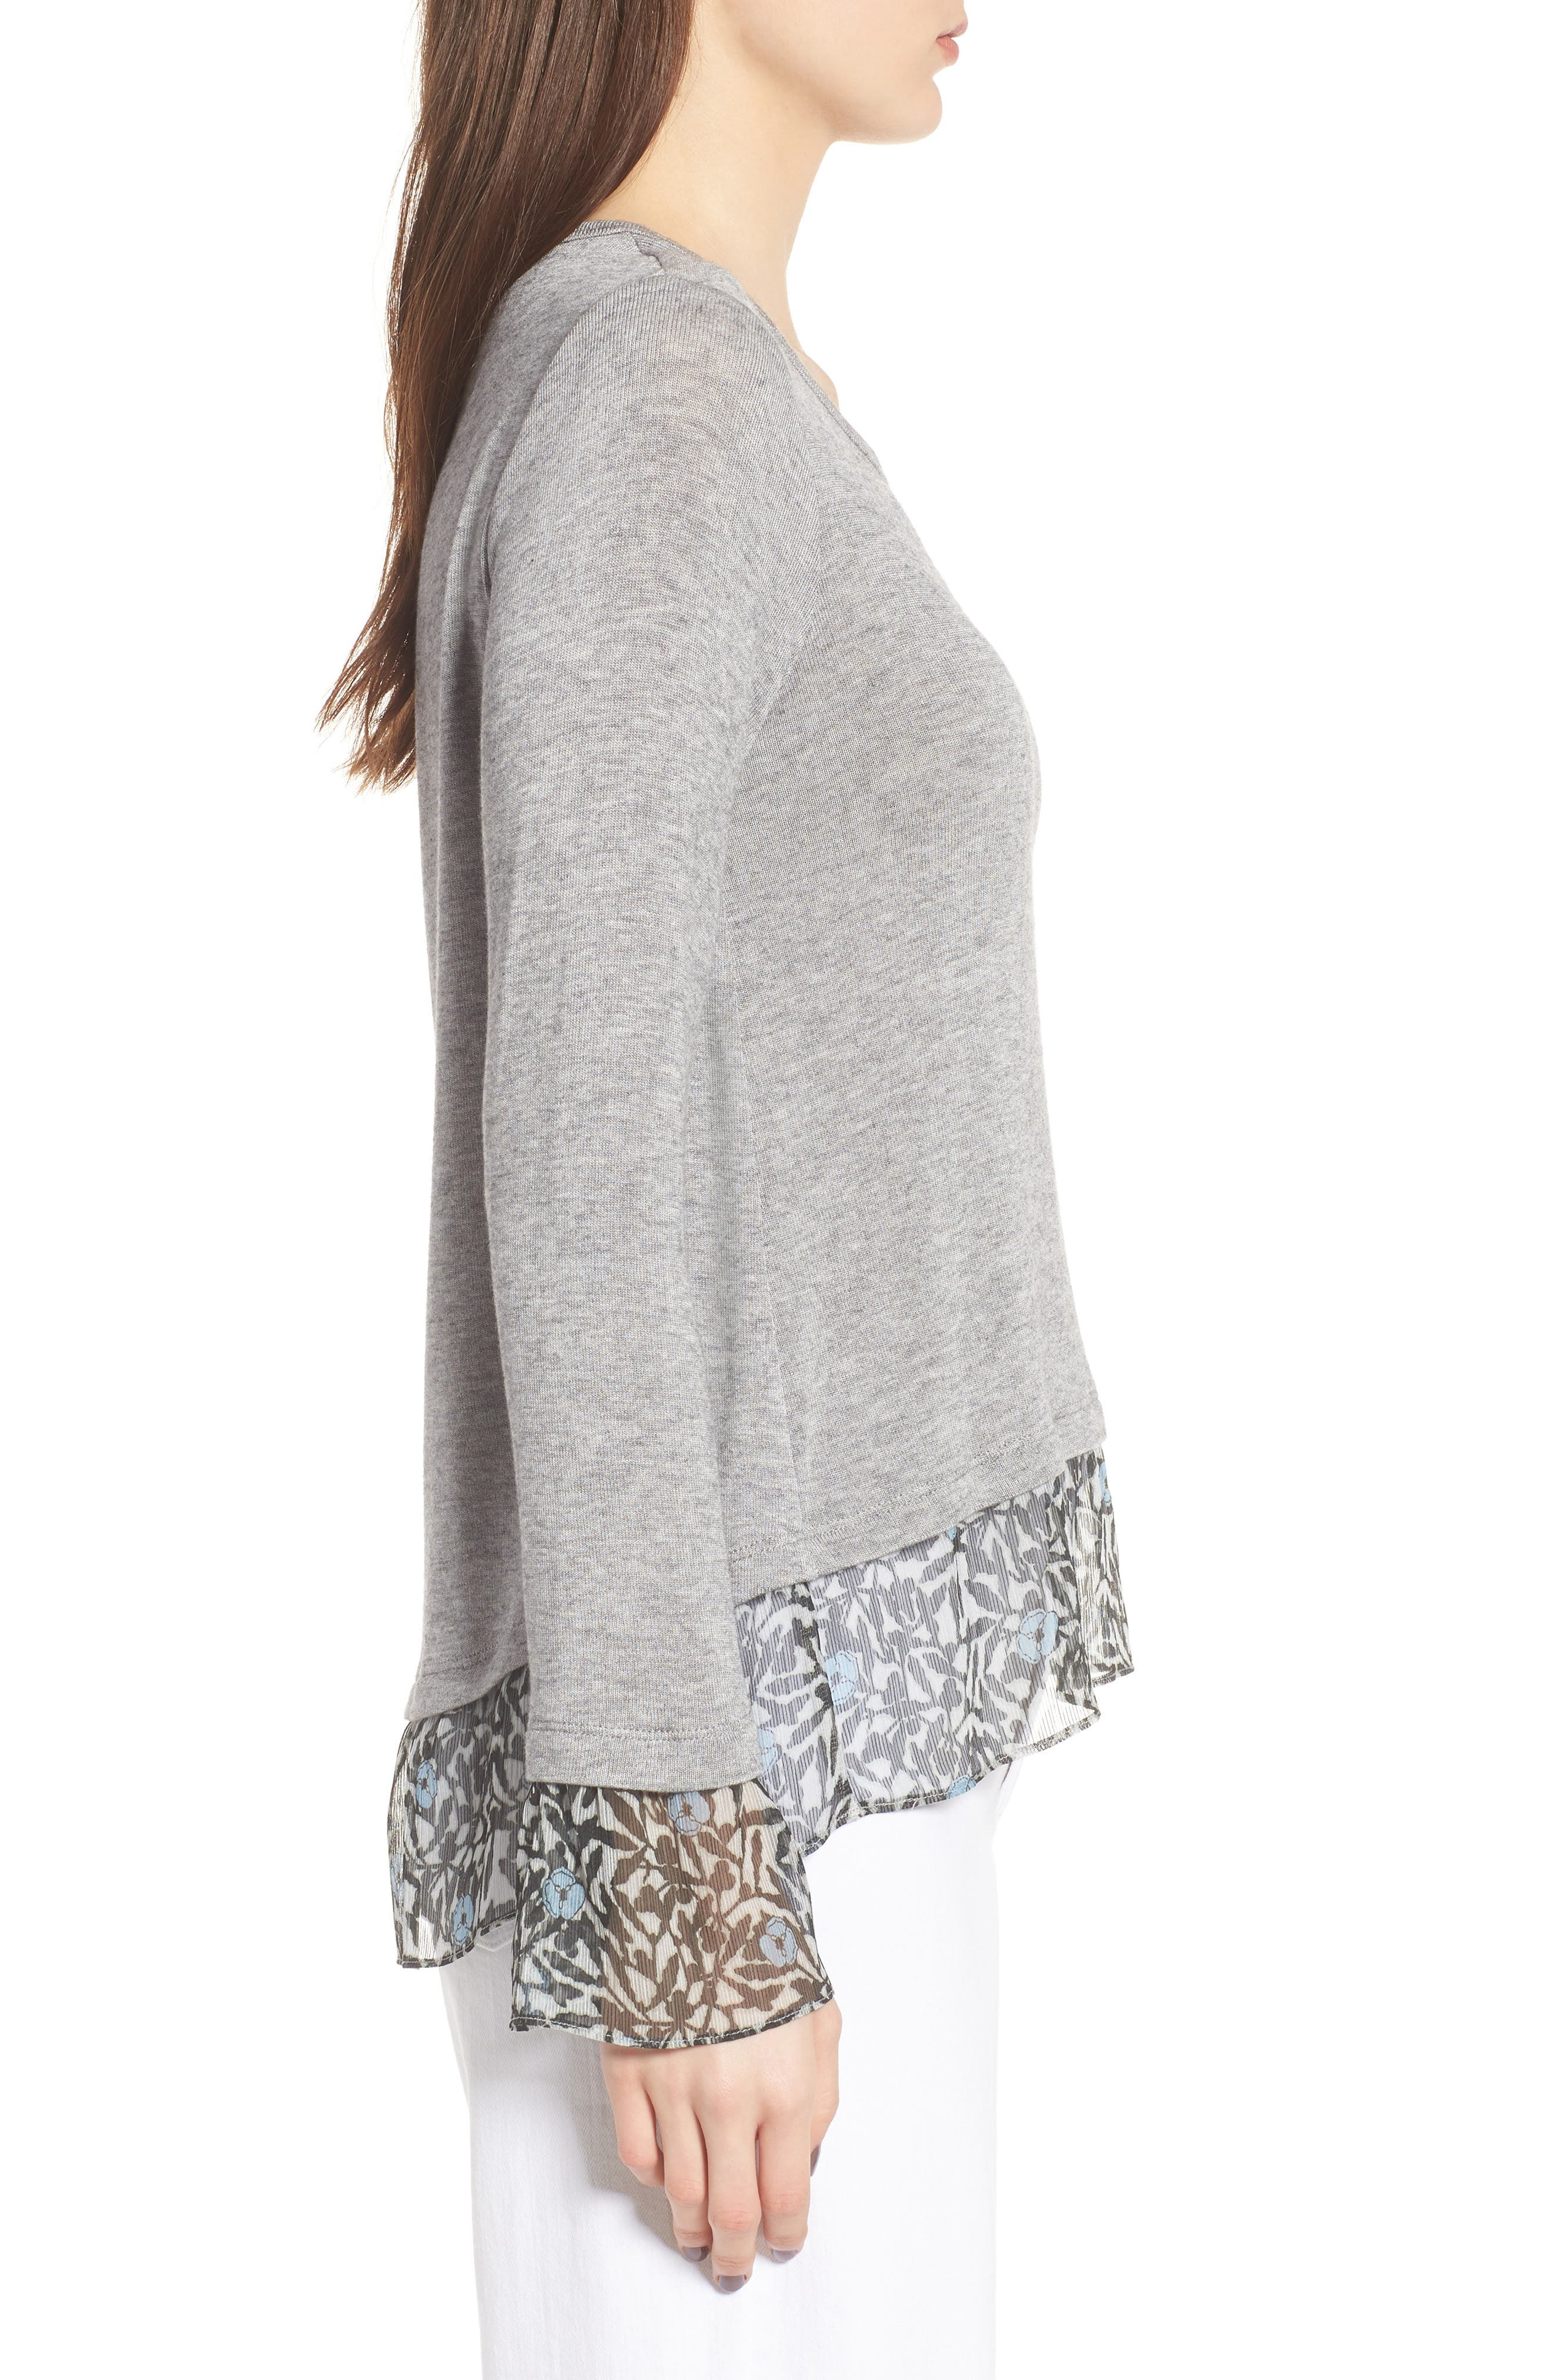 Taiko Lace Trim Top,                             Alternate thumbnail 3, color,                             Heather Grey